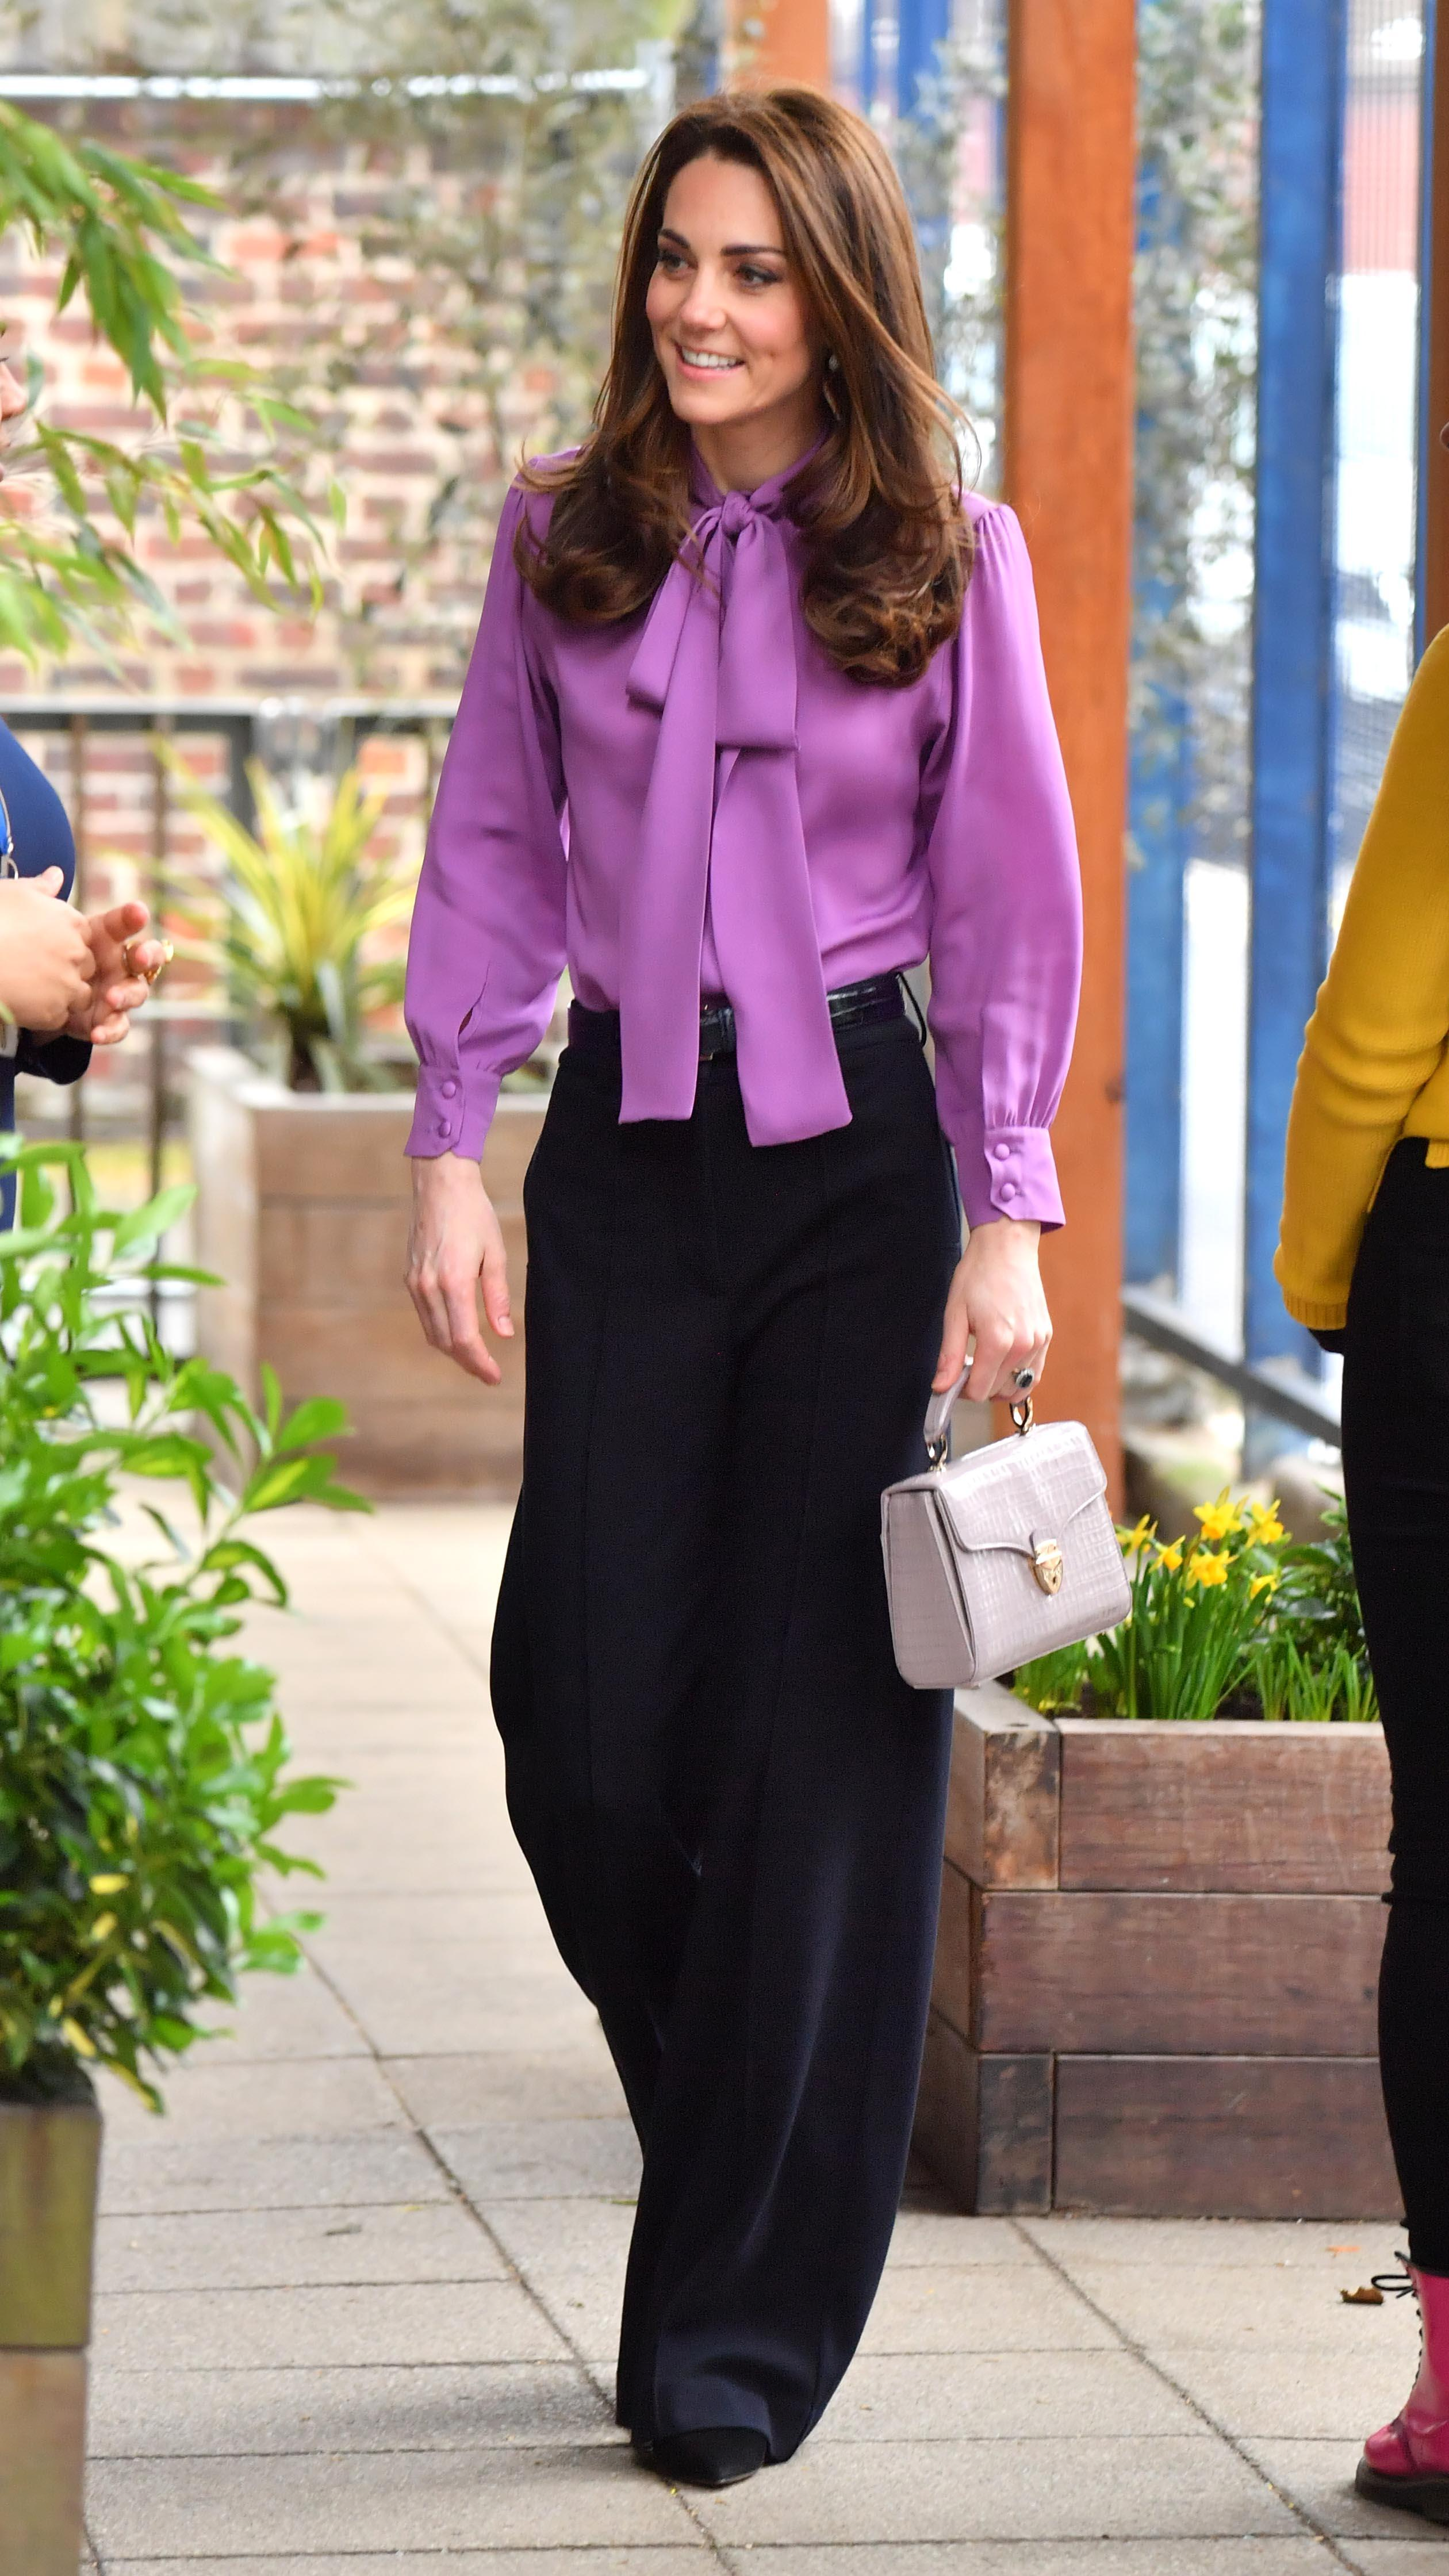 7c7a0857893c Catherine, Duchess of Cambridge visits the Henry Fawcett Children's Centre  on March 12, 2019 in London, England. Photo: Getty Images/Arthur Edwards